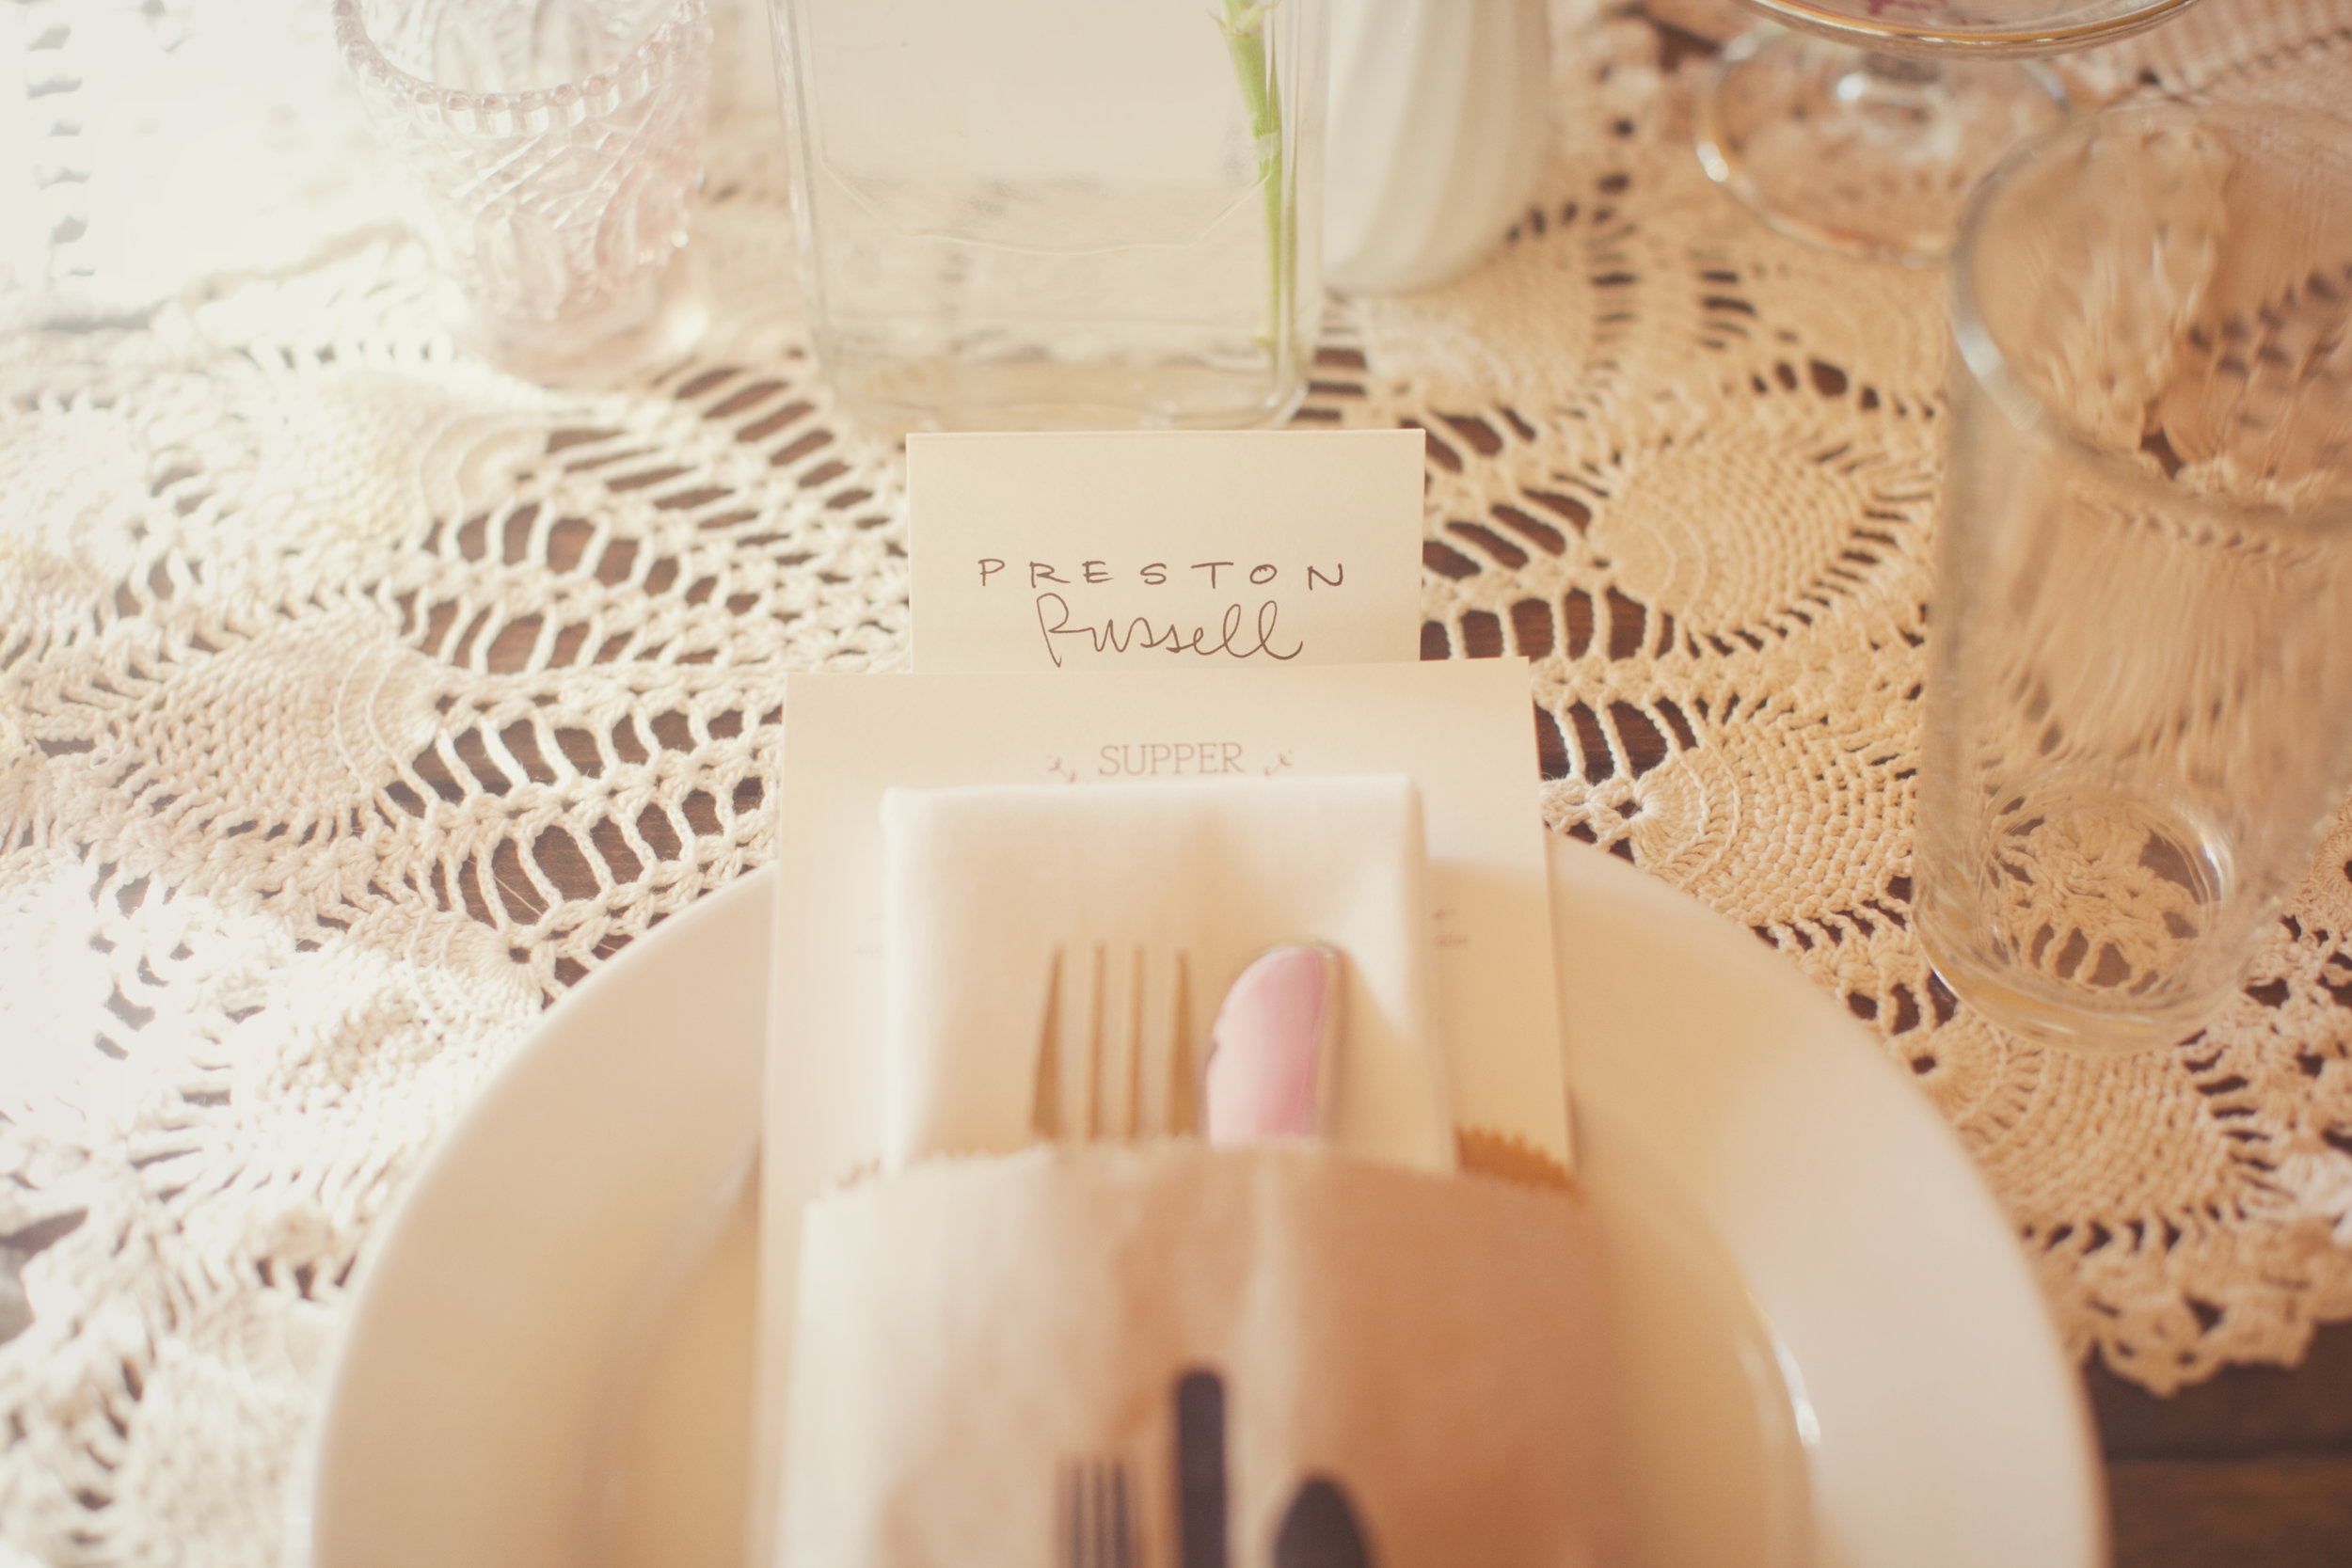 Simply-Charming-Socials_Atlanta-Wedding-Planner_Our-Labor-Of-Love_Maggie-and-Greg_23.jpg